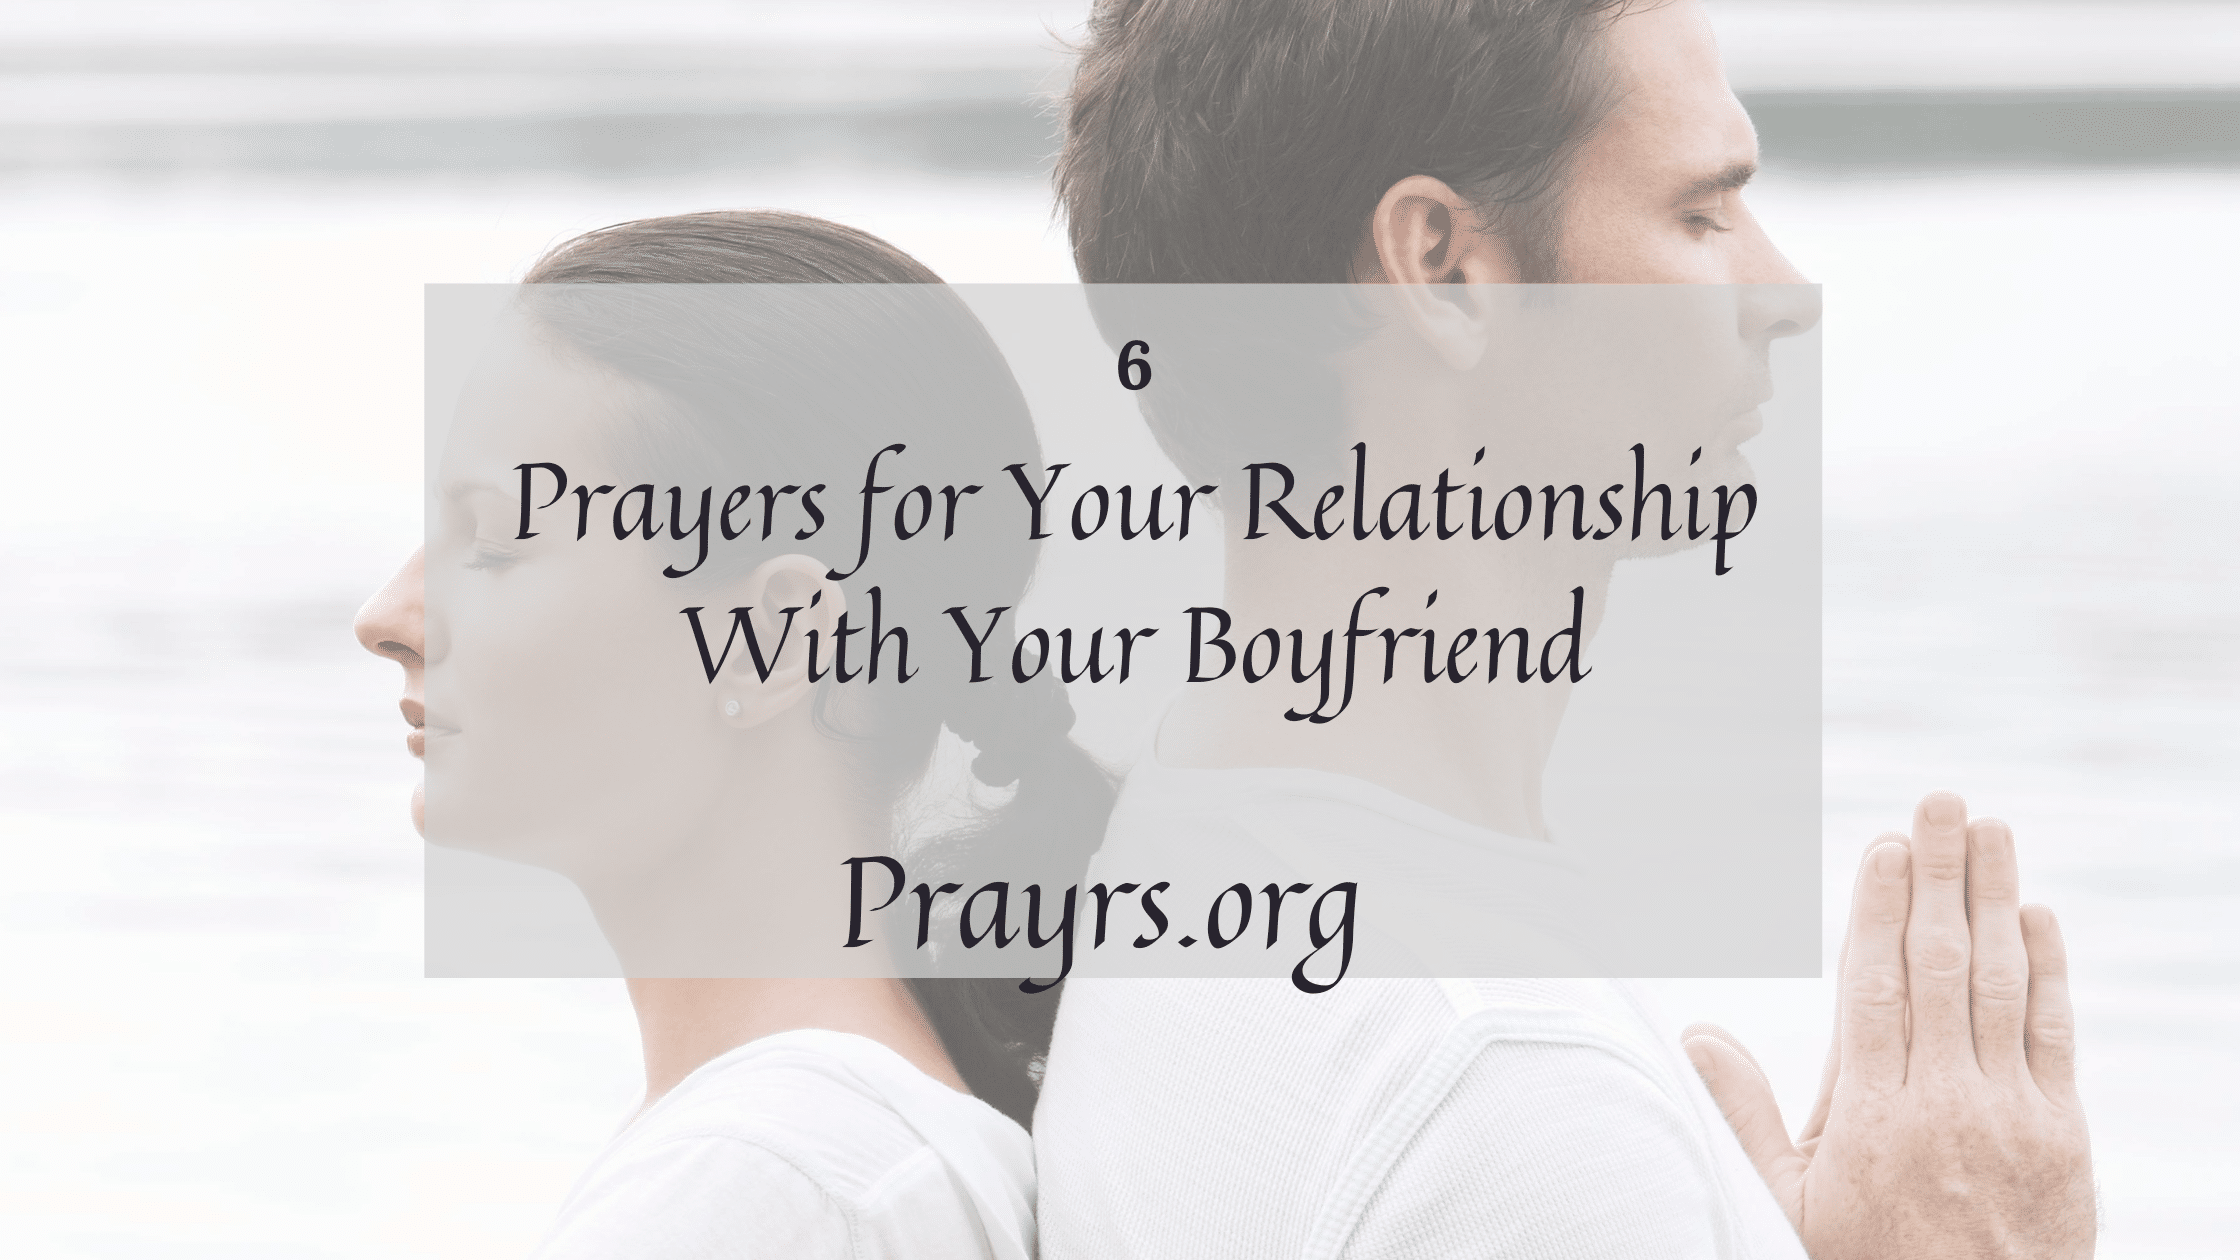 Prayers for Your Relationship With Your Boyfriend